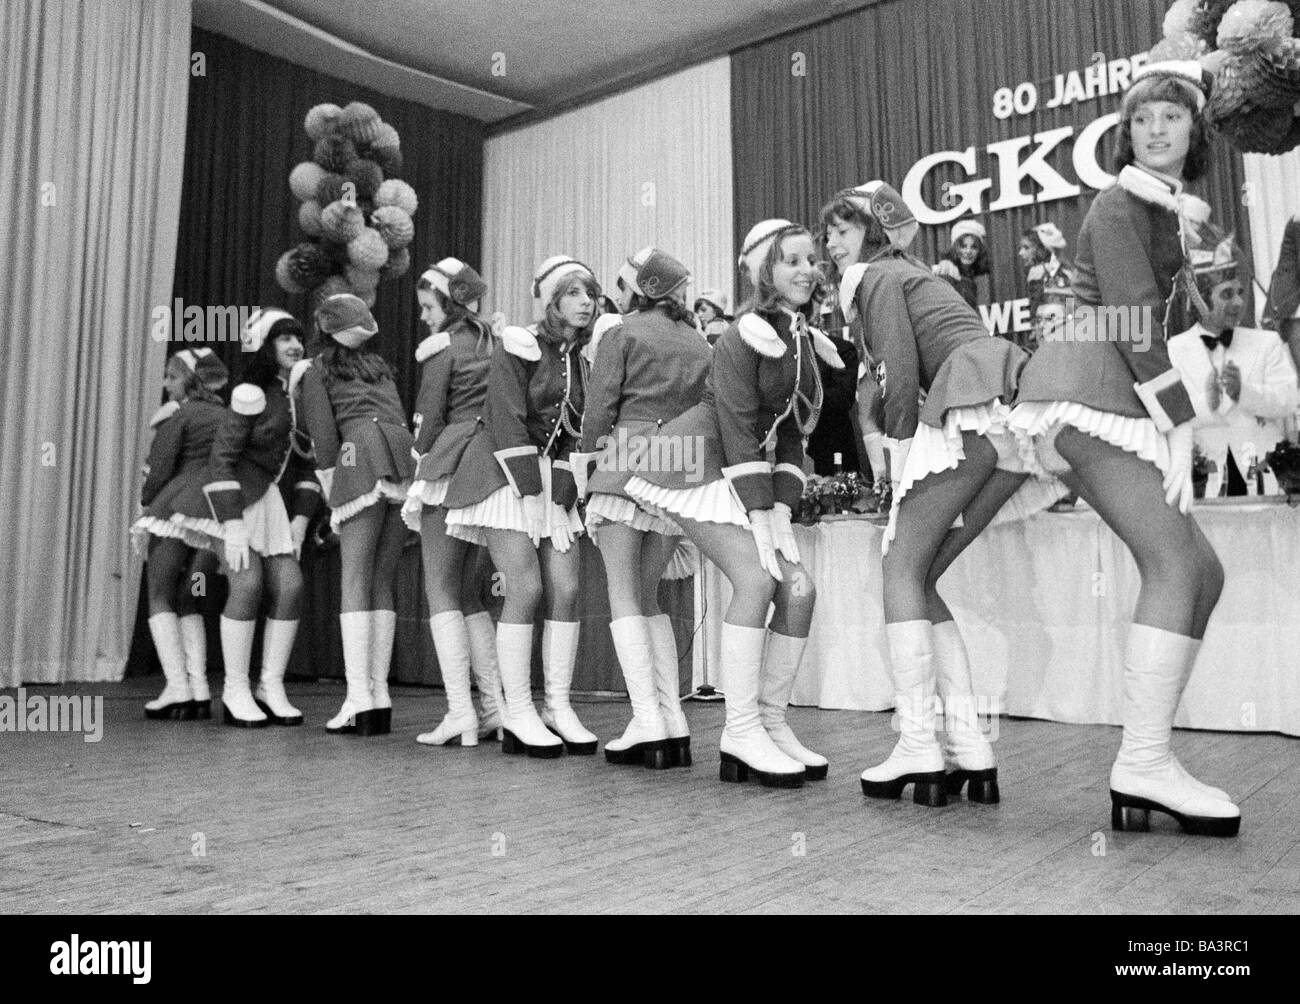 Seventies, black and white photo, people, Rhenish carnival, dancing group in costumes, girls, aged 20 to 25 years - Stock Image